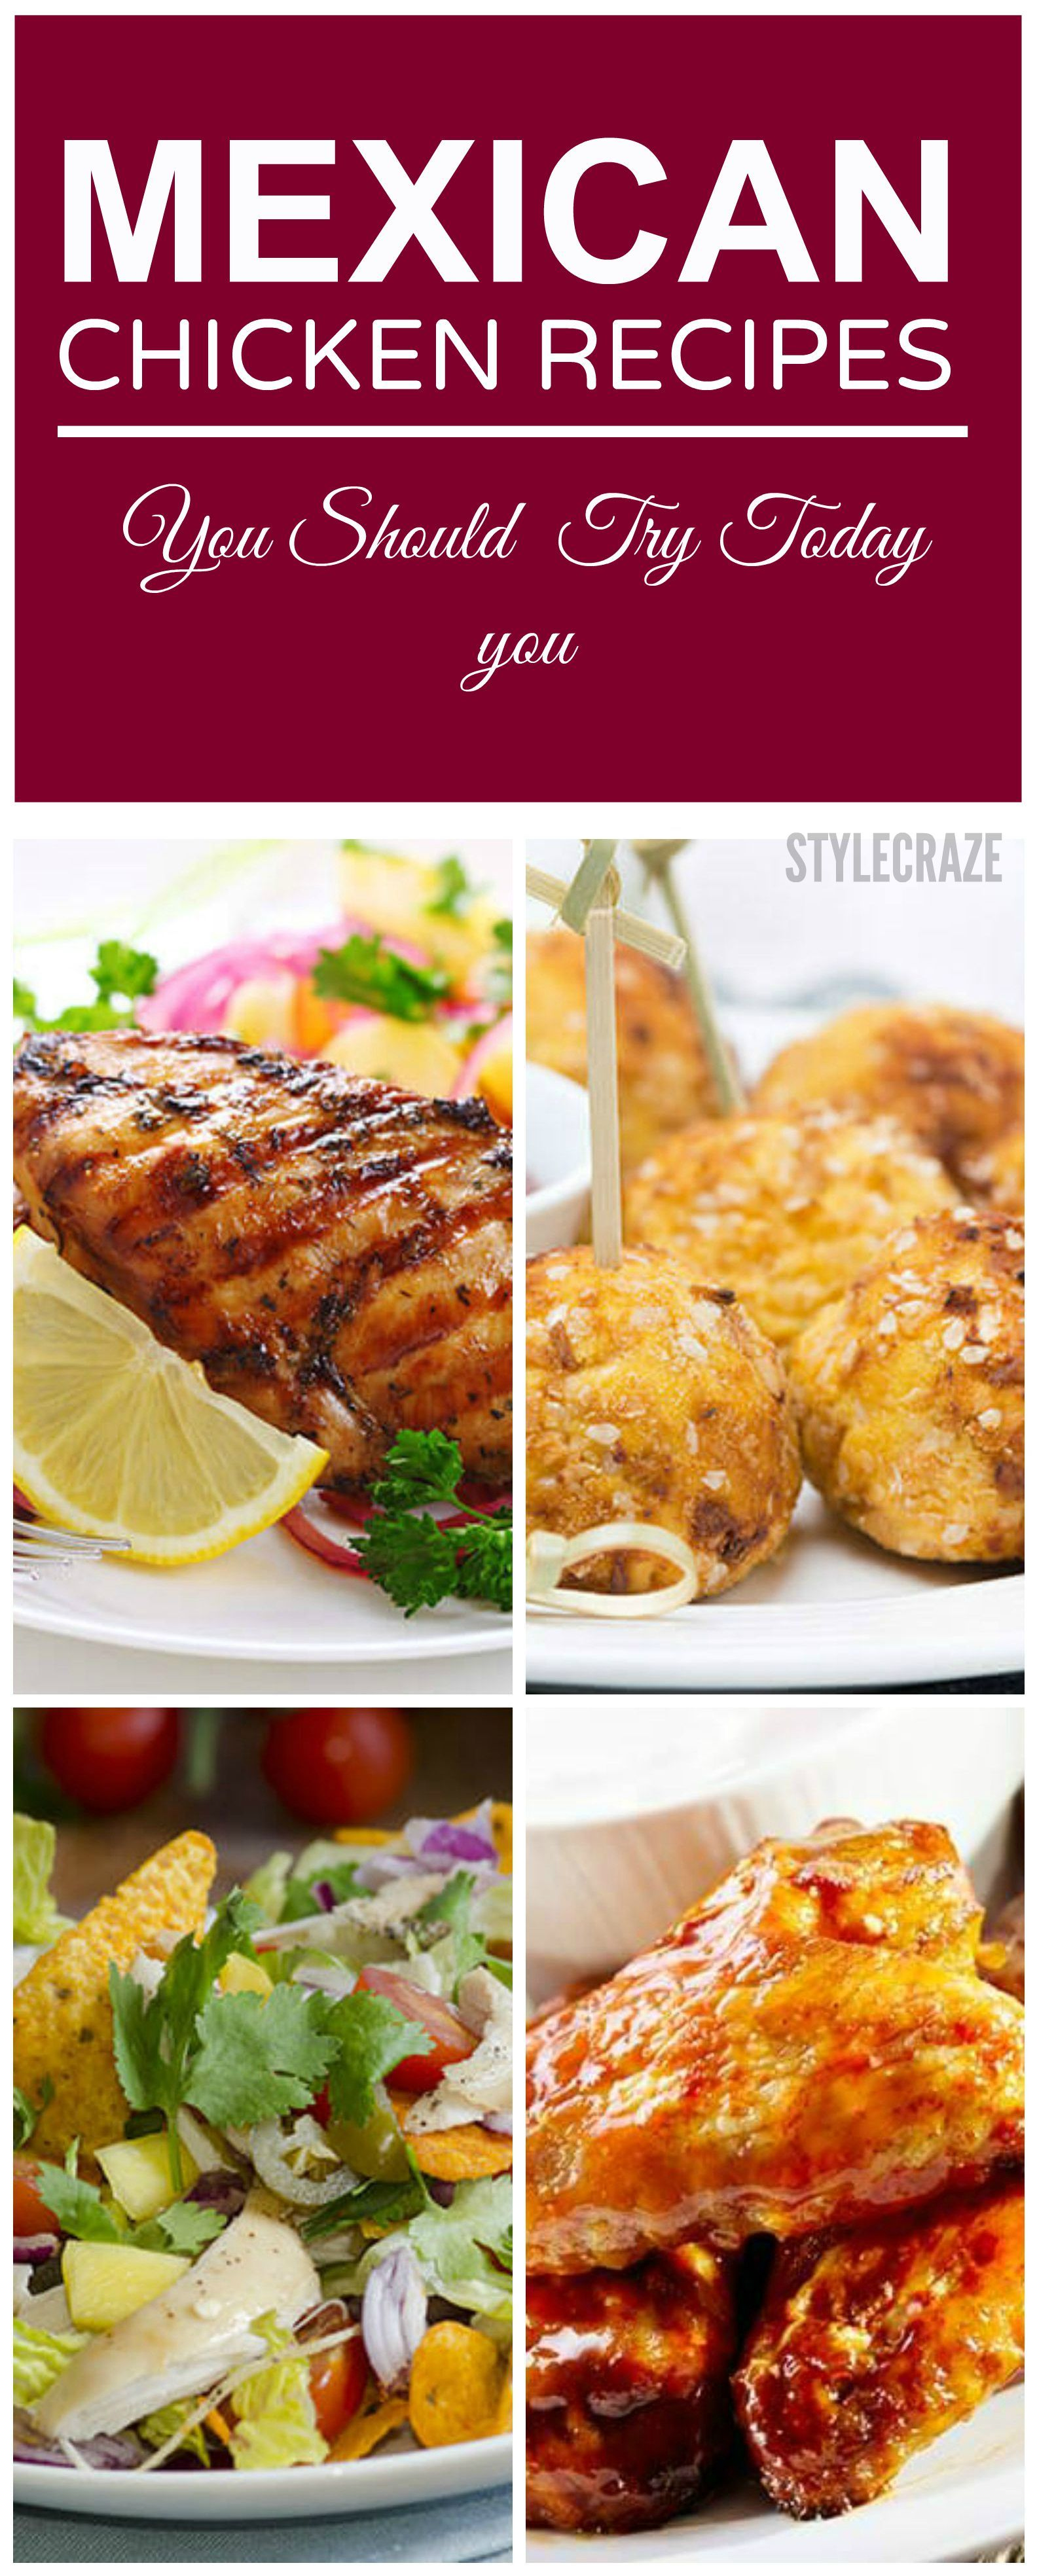 15 Yummy Chicken Recipes By Sanjeev Kapoor Mexican Chicken Recipes Yummy Chicken Recipes